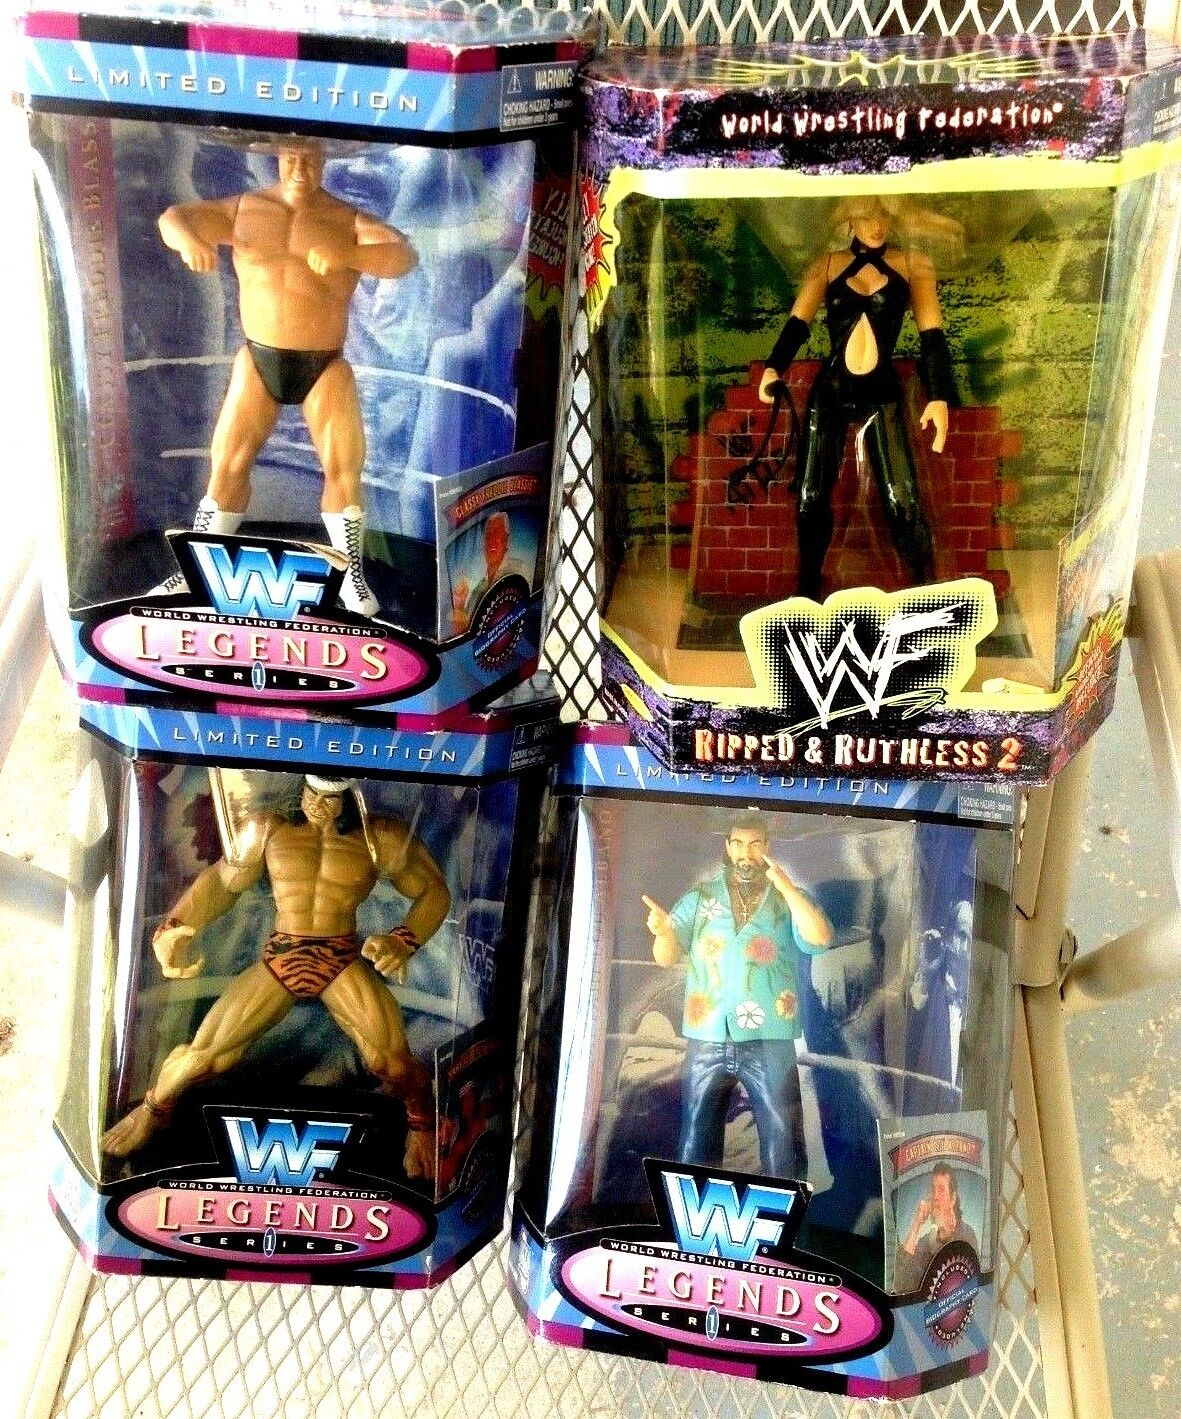 4 Jakks 1997 Wrestling WWF Legend Series 1 Snuka Captain Lou Sable Figure + Free